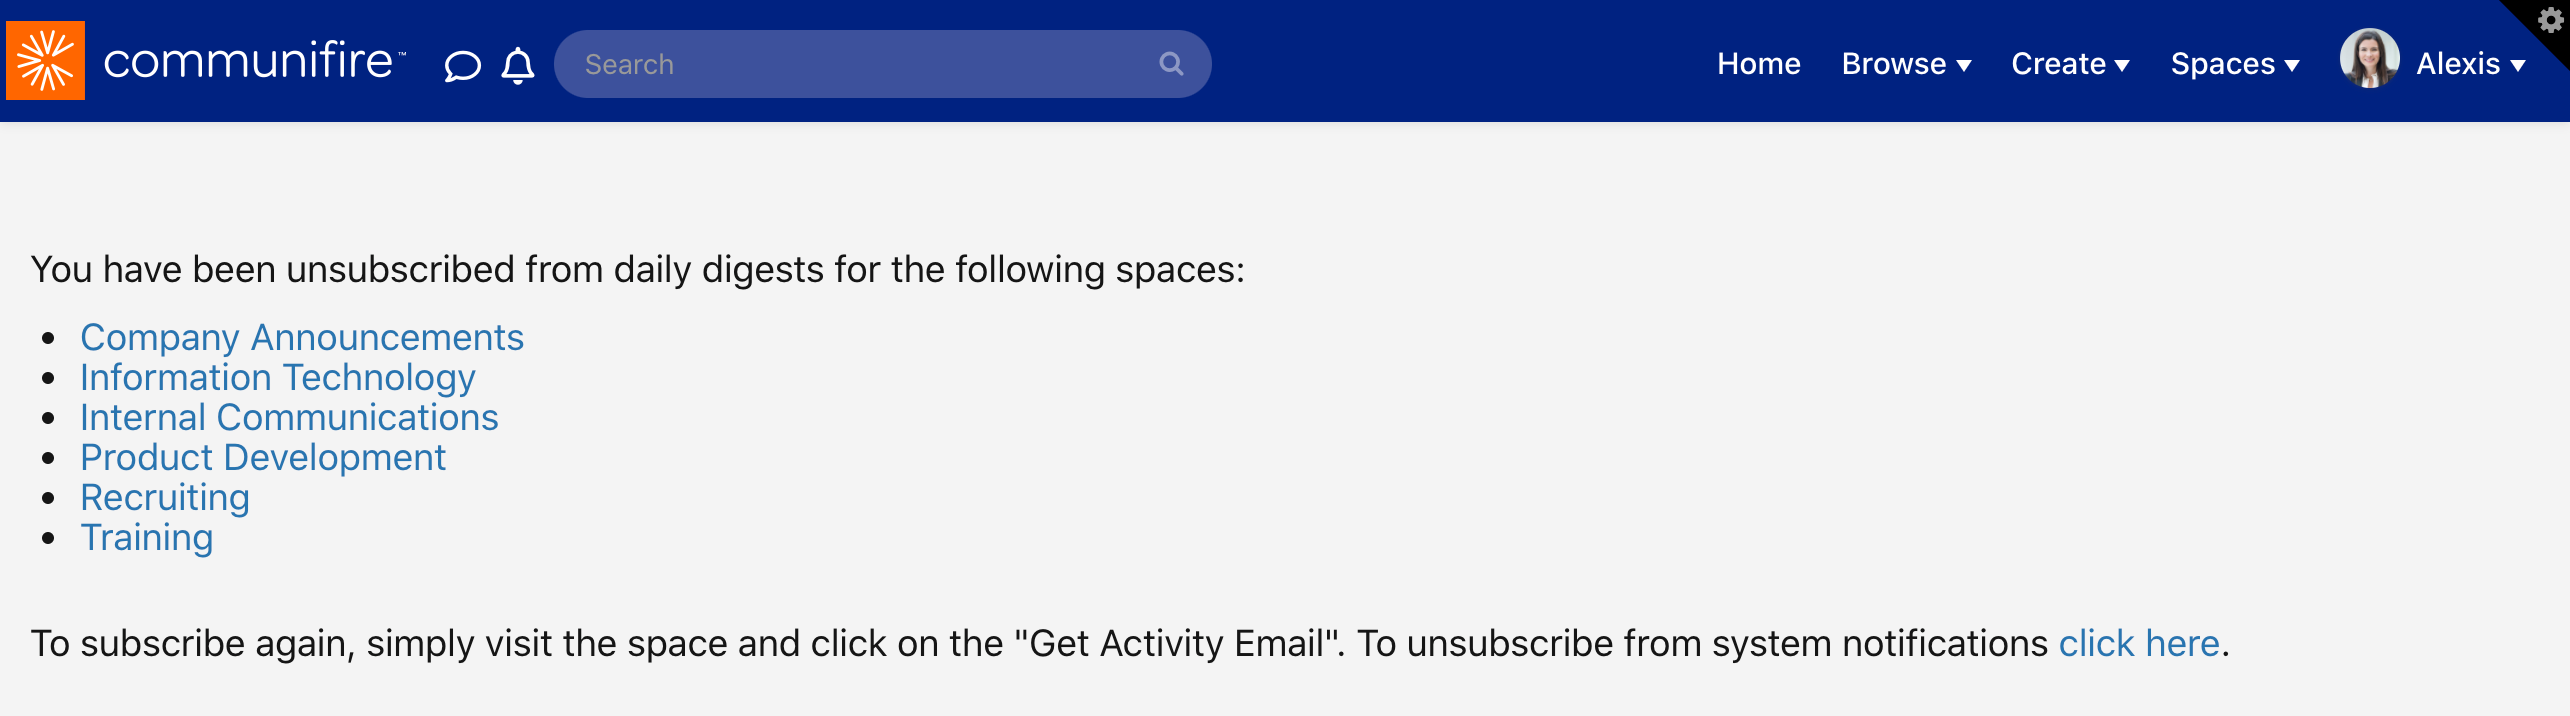 Unsubscribed page